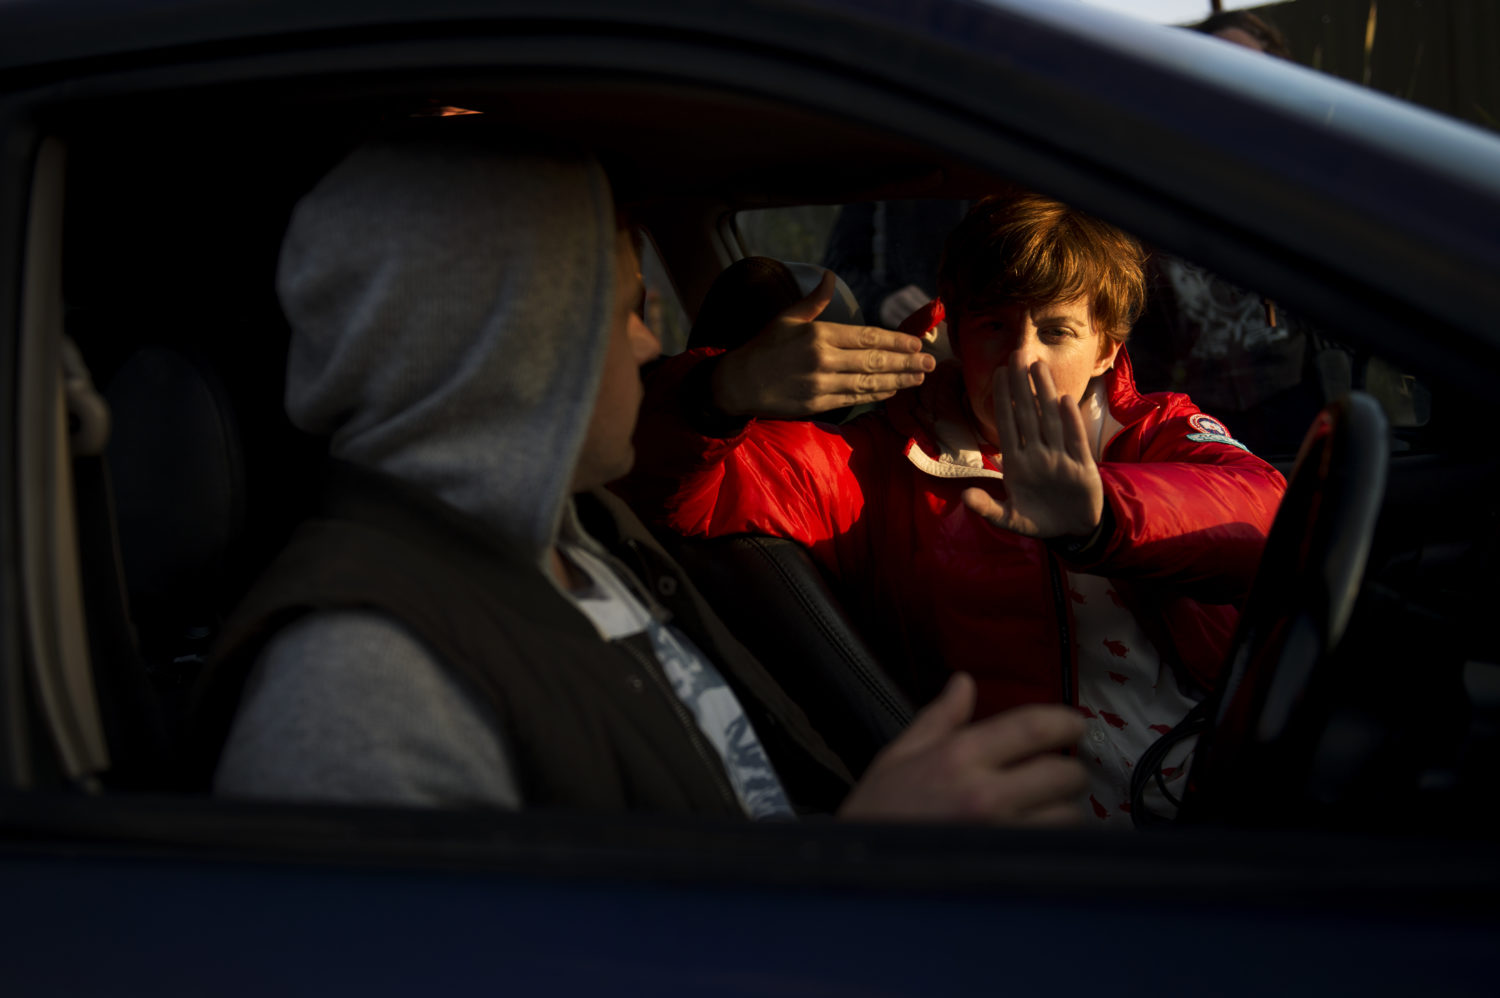 Sofya in a bright red jacket in the passenger seat of a car, giving direction to an actor in a hoodie behind the wheel.